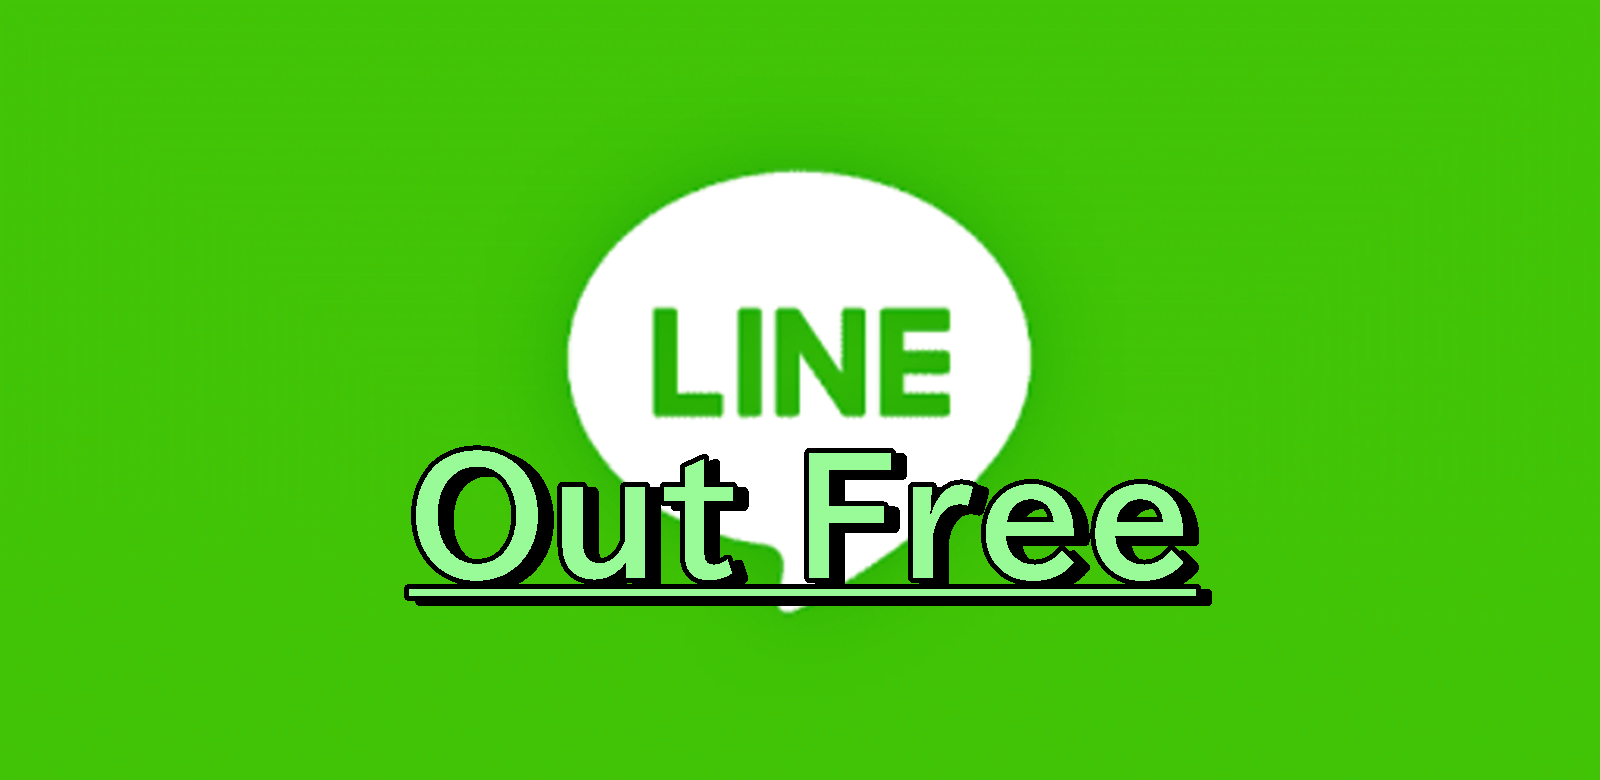 LINE Out free 使い方